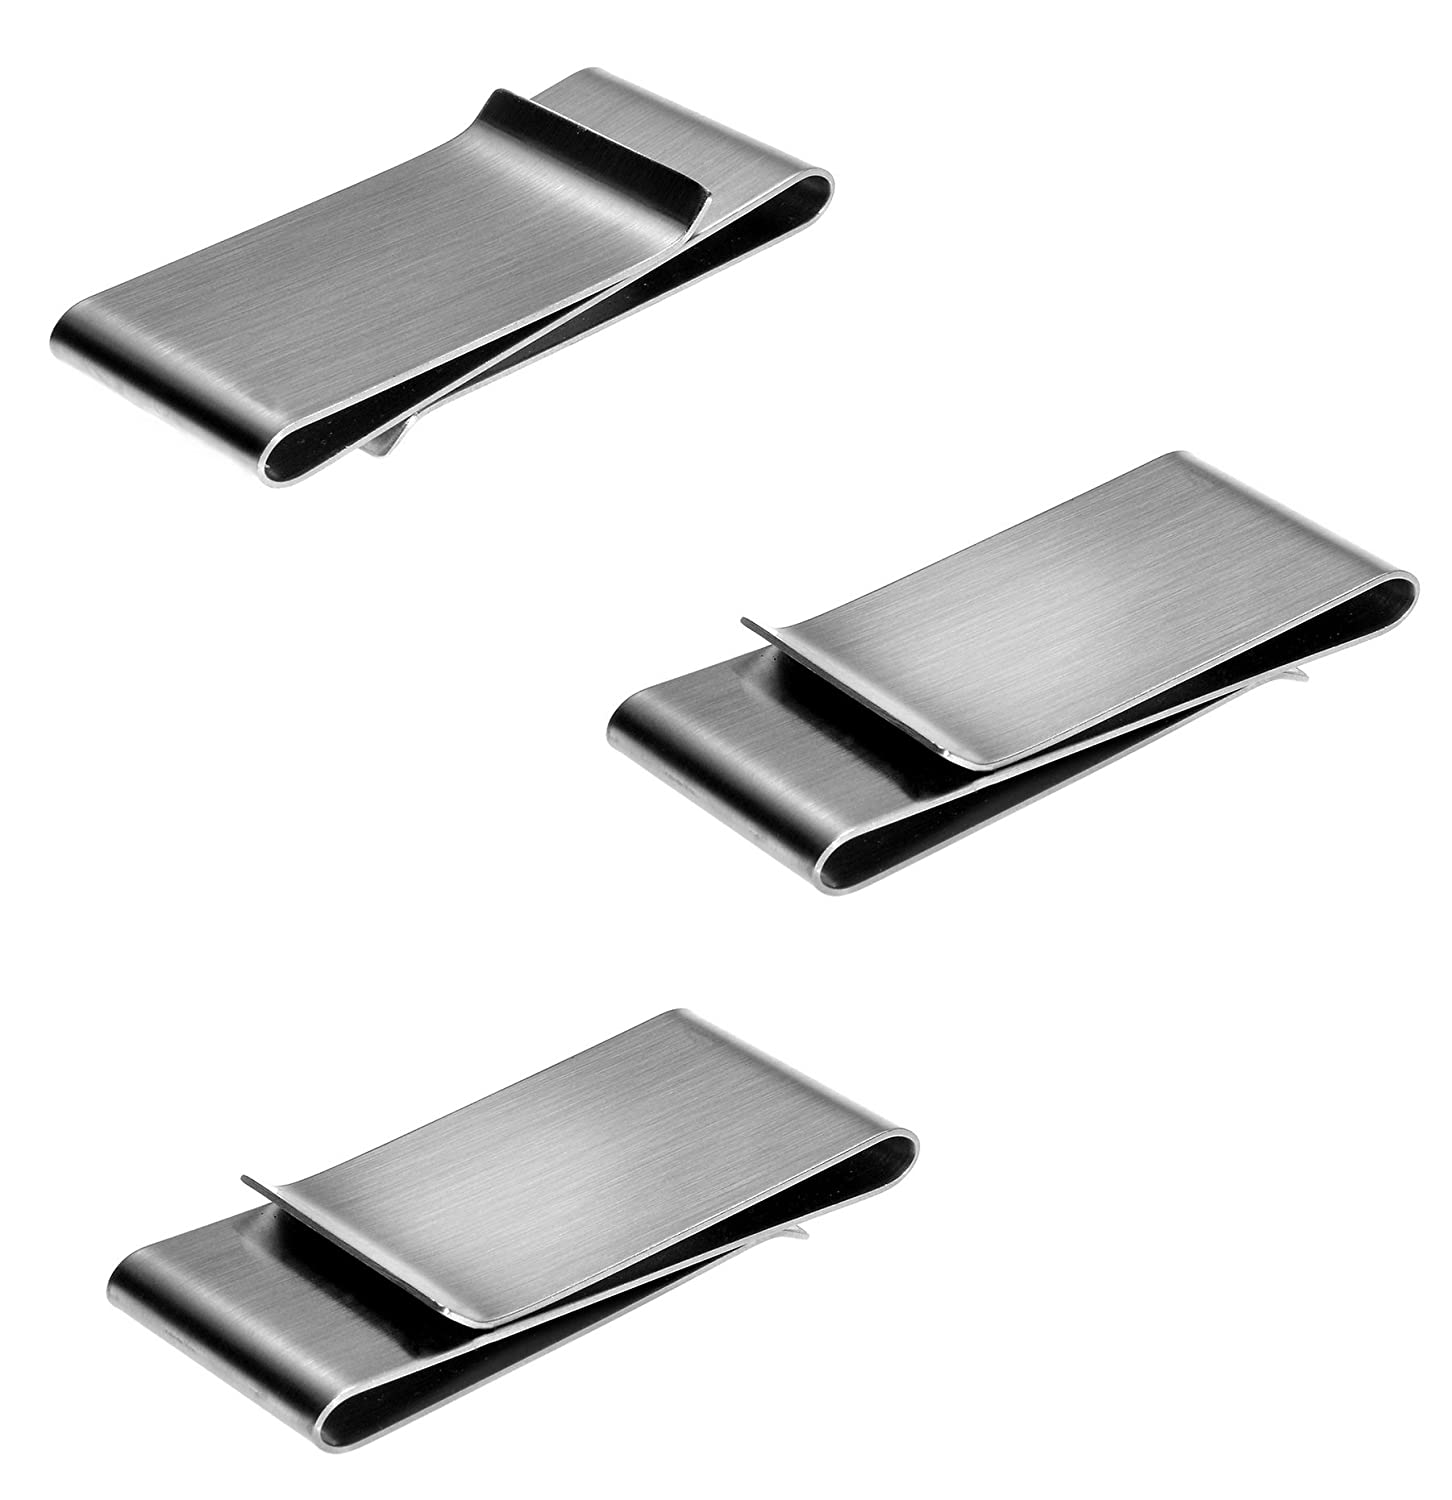 Double Clip Money Clips 3 Pack by JGFinds Stainless Steel Blanks for Engraving or Personalize